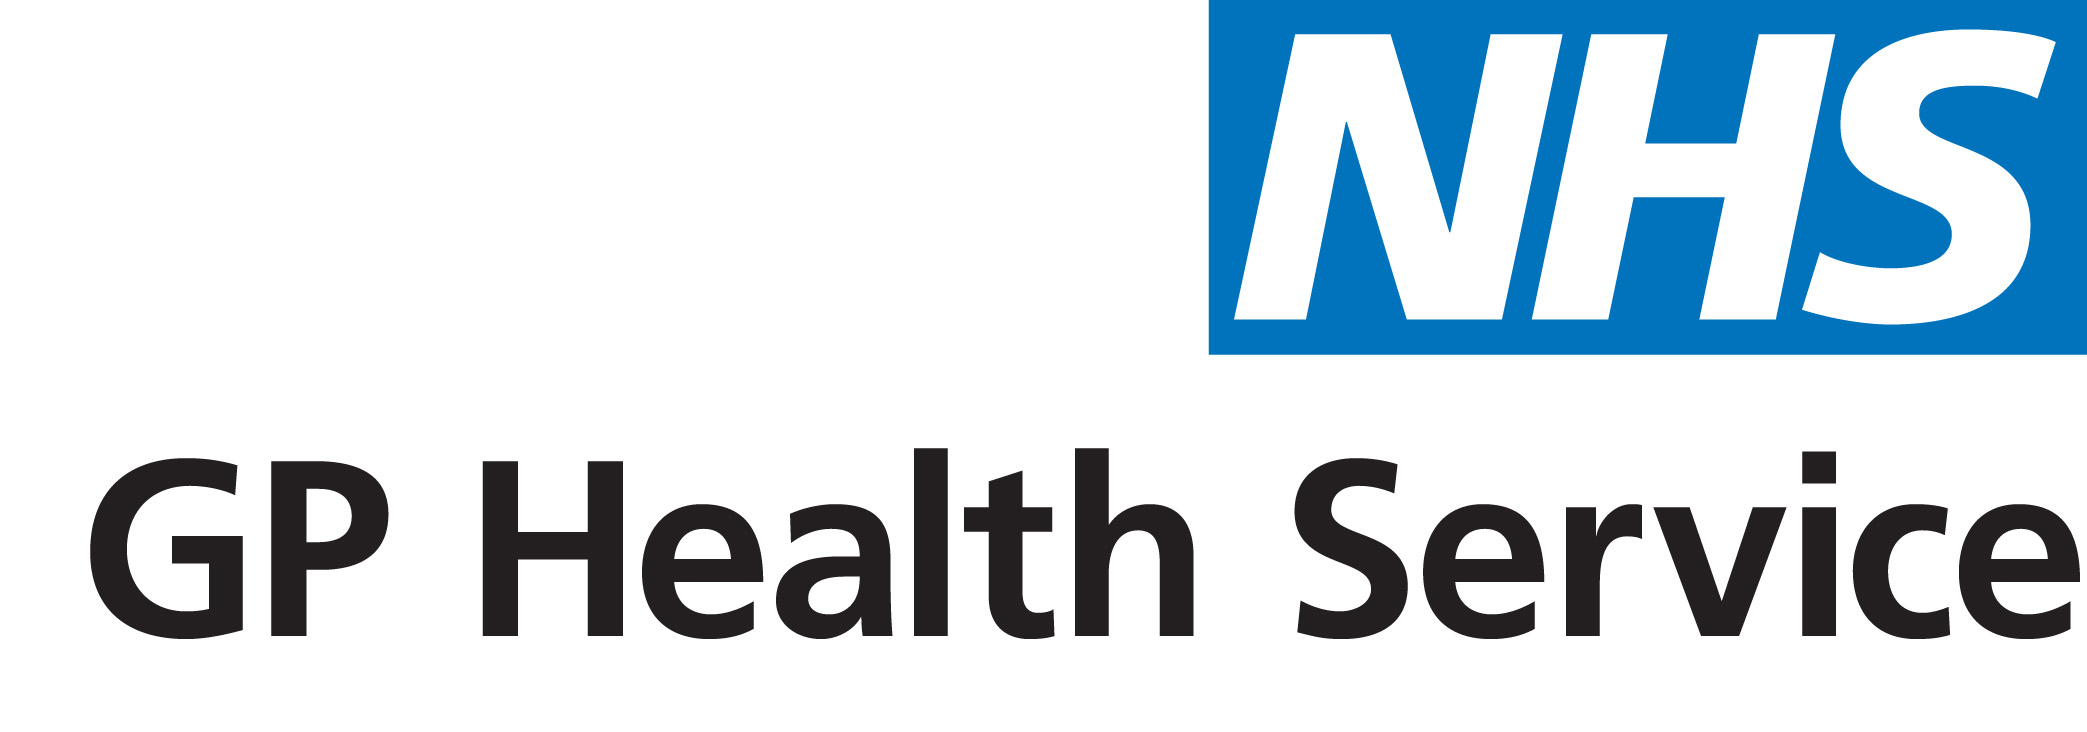 Nhs Gp Health Service Rgb Right Aligned 002